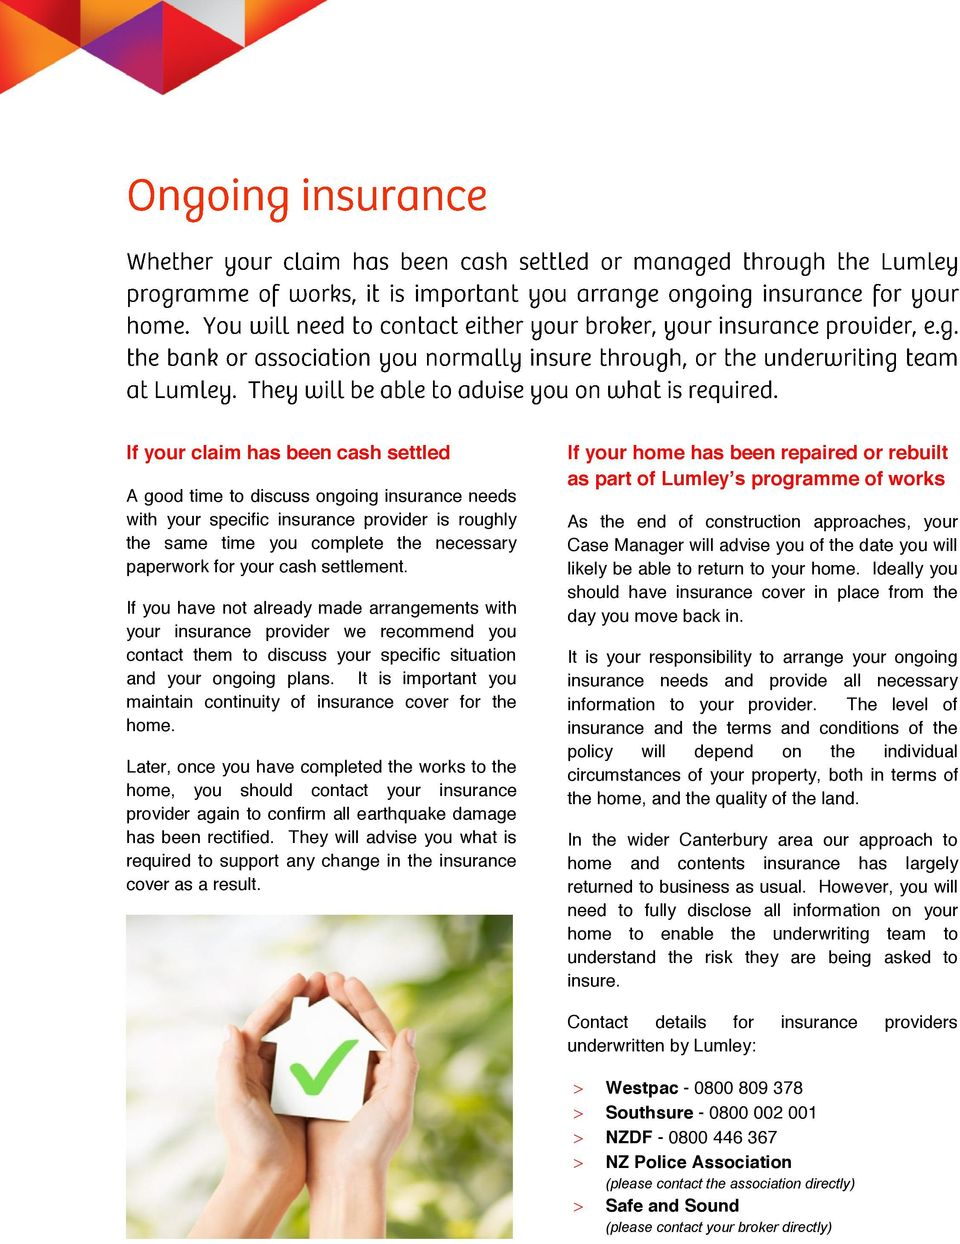 It is important you maintain continuity of insurance cover for the home.